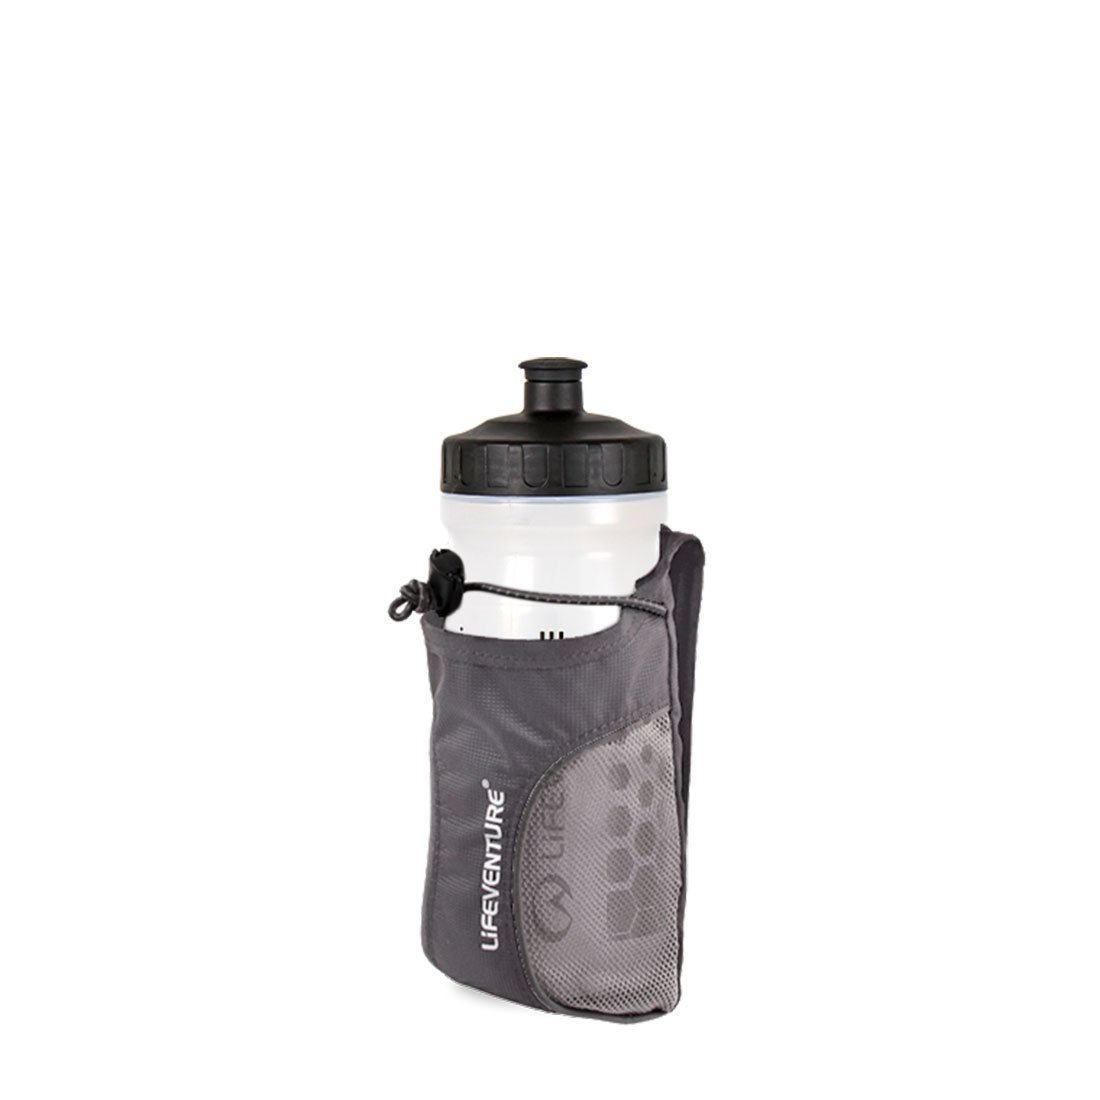 Water bottle holder water bottle pouch lifeventure czech